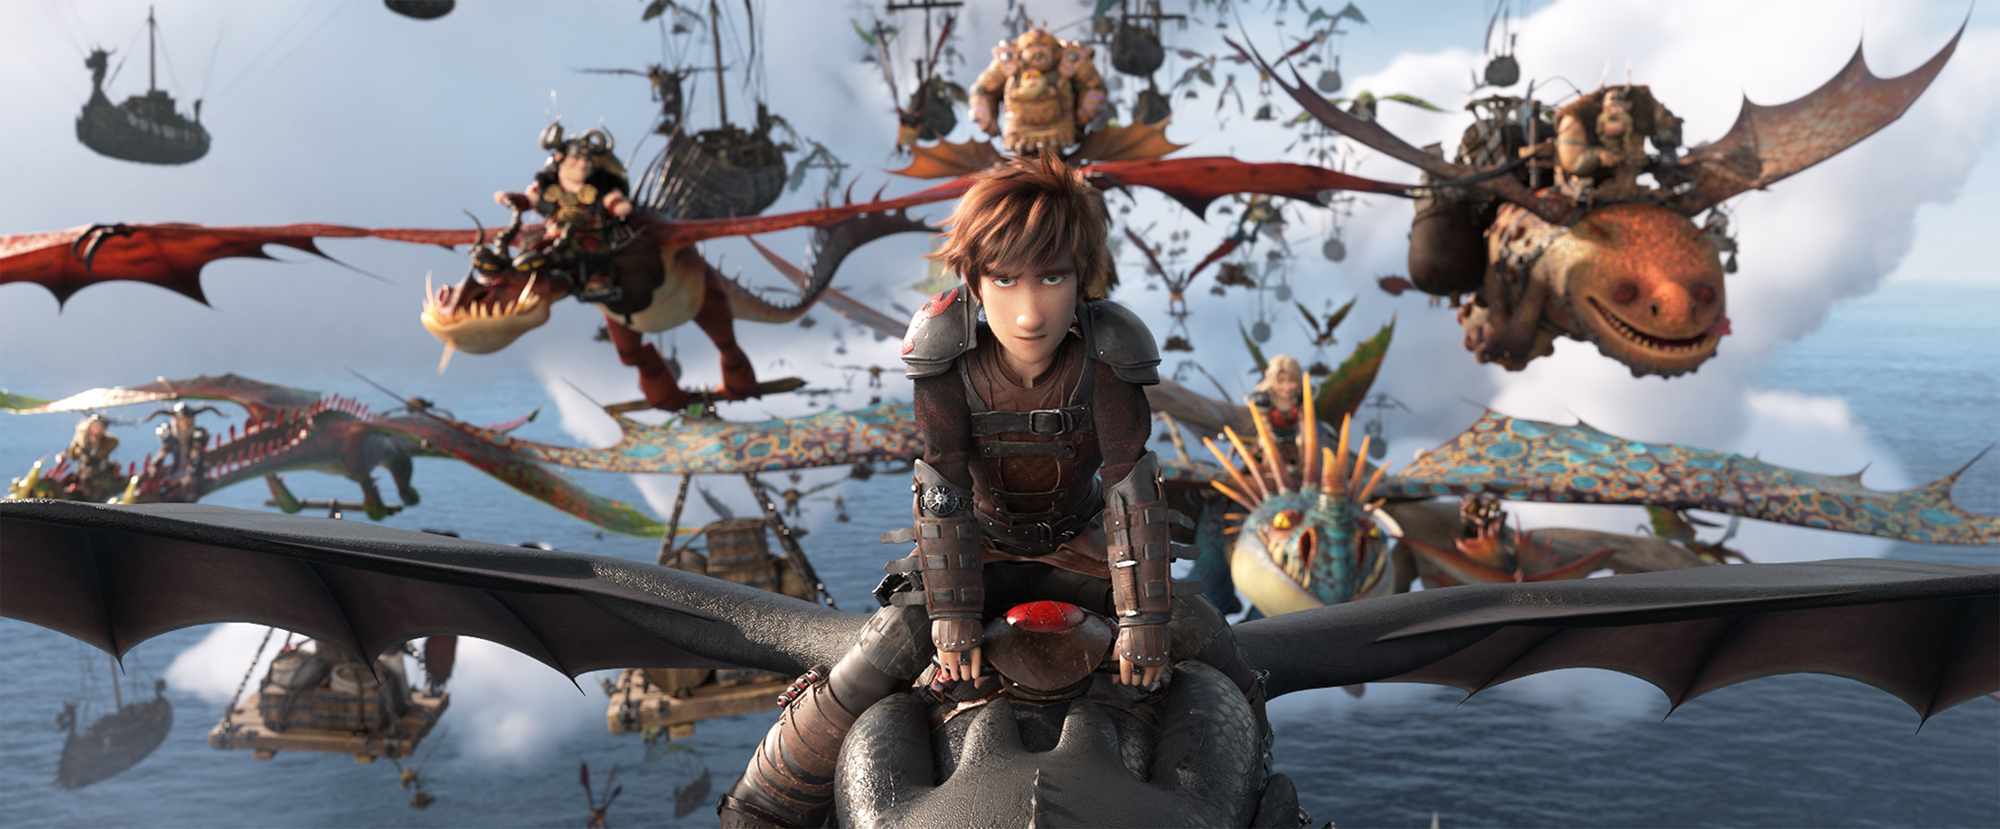 The Hidden World' threequel movie review: Too much dragon, not